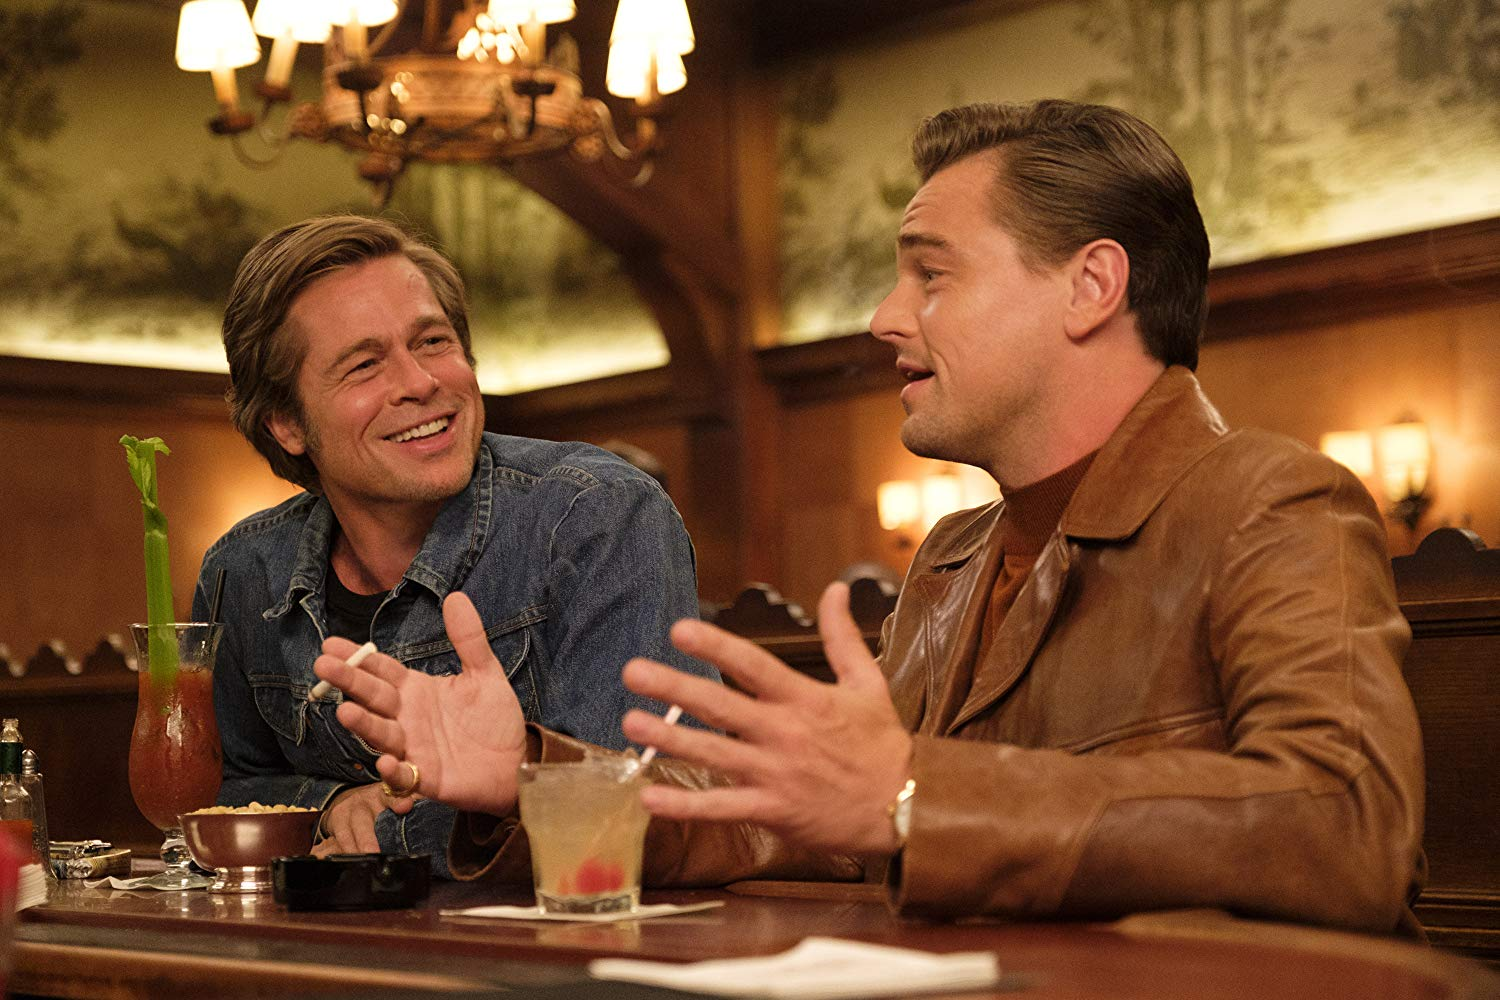 Still of Brad Pitt and Leonardo DiCaprio in Once Upon a Time in Hollywood